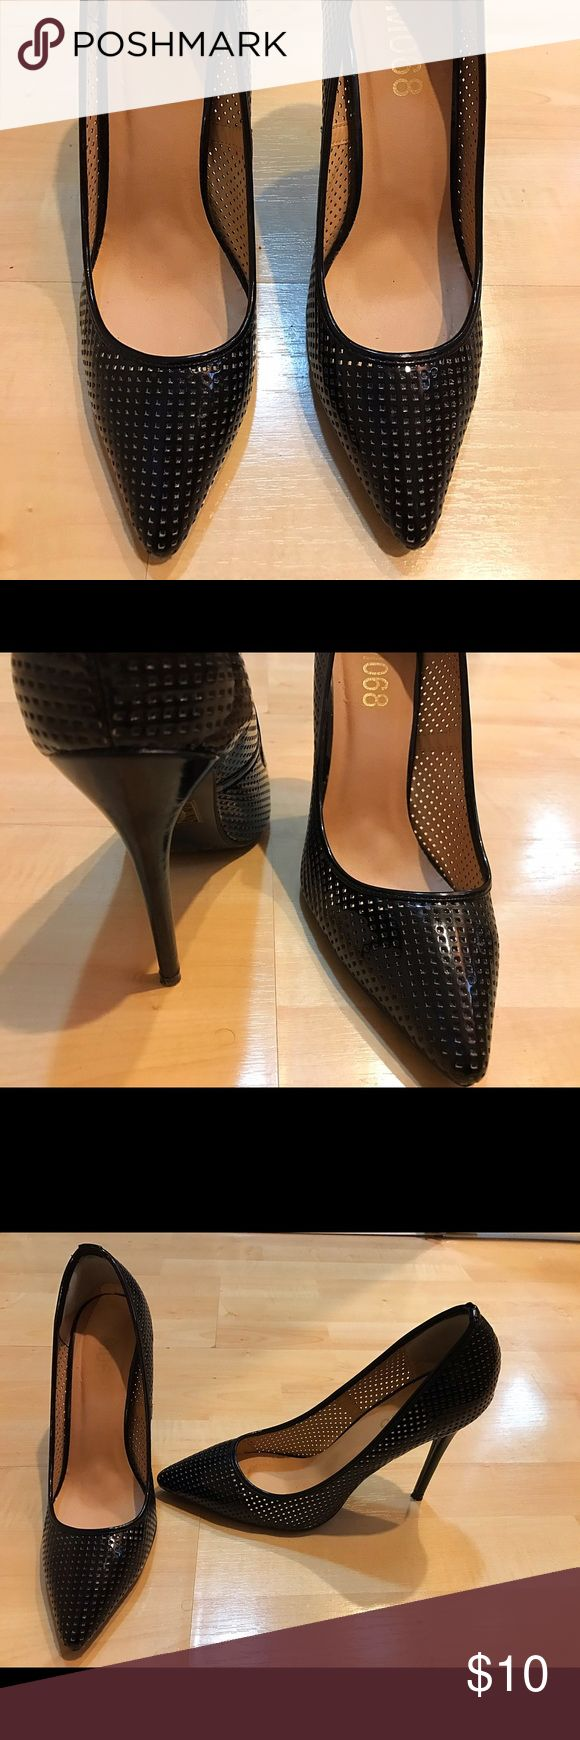 BLACK POINTY PATENT HIGH HEELS PUMPS SIZE 8.5 BLACK POINTY PATENT HIGH HEELS PUMPS SIZE 8.5 IN EXCELLENT CONDITION!! M068 Shoes Heels